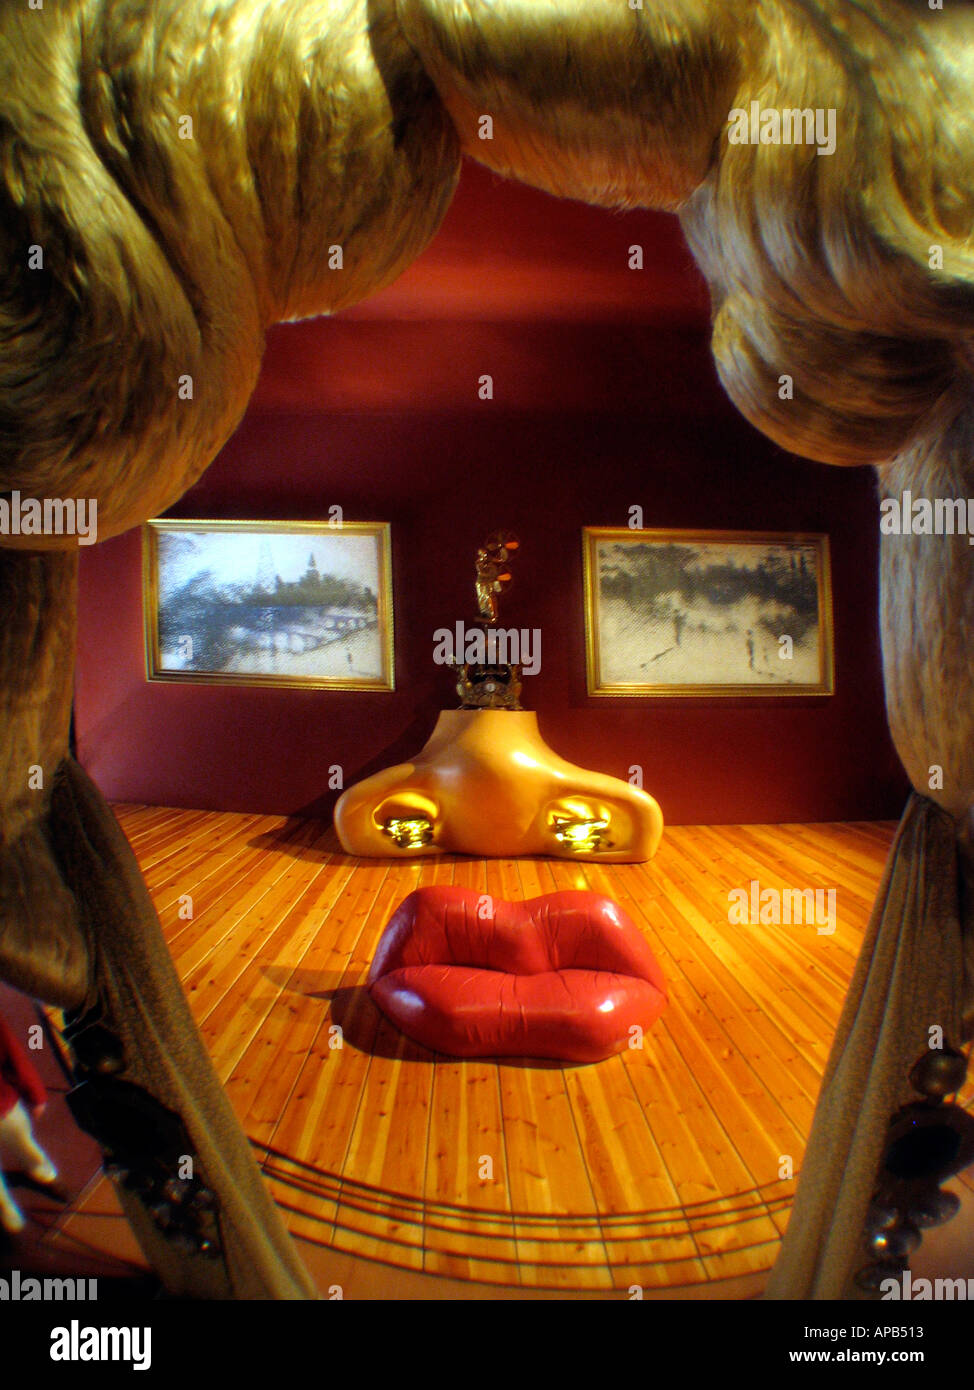 A Mae West room inside the Salvador Dali museum that looks like a face, the lips are in fact a red leather sofa. - Stock Image